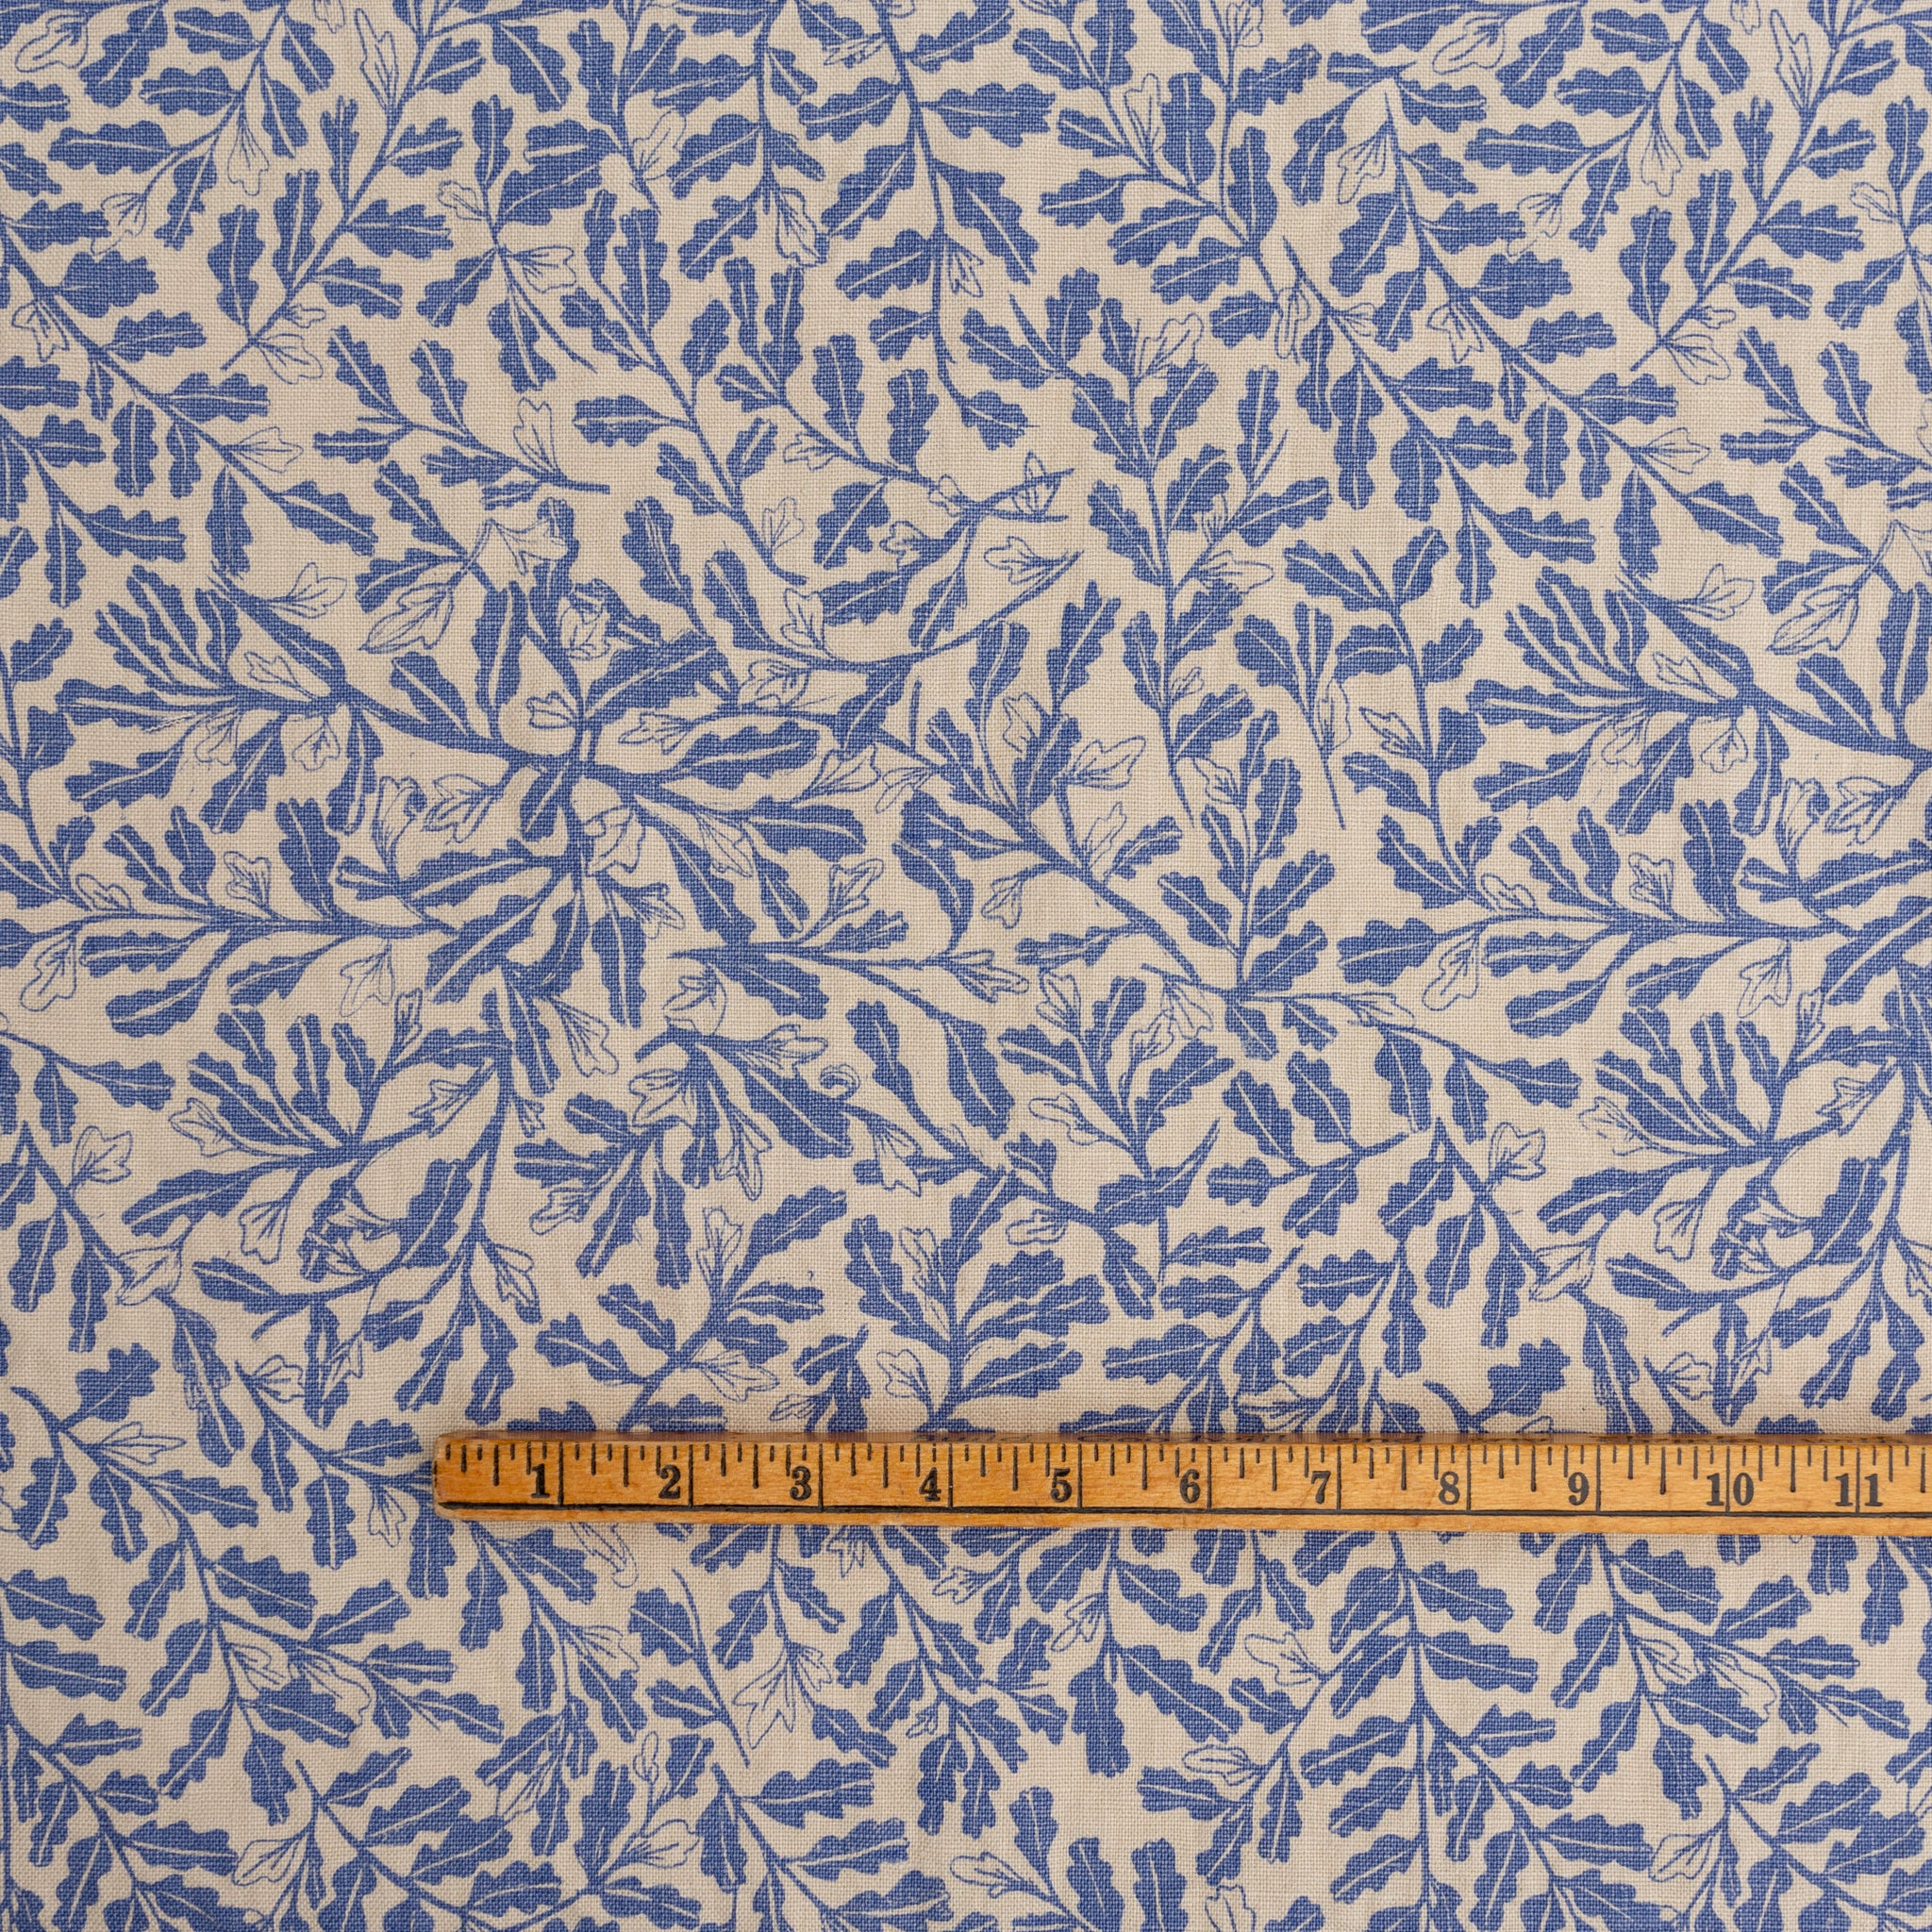 Parlor in Cornflower - Linen